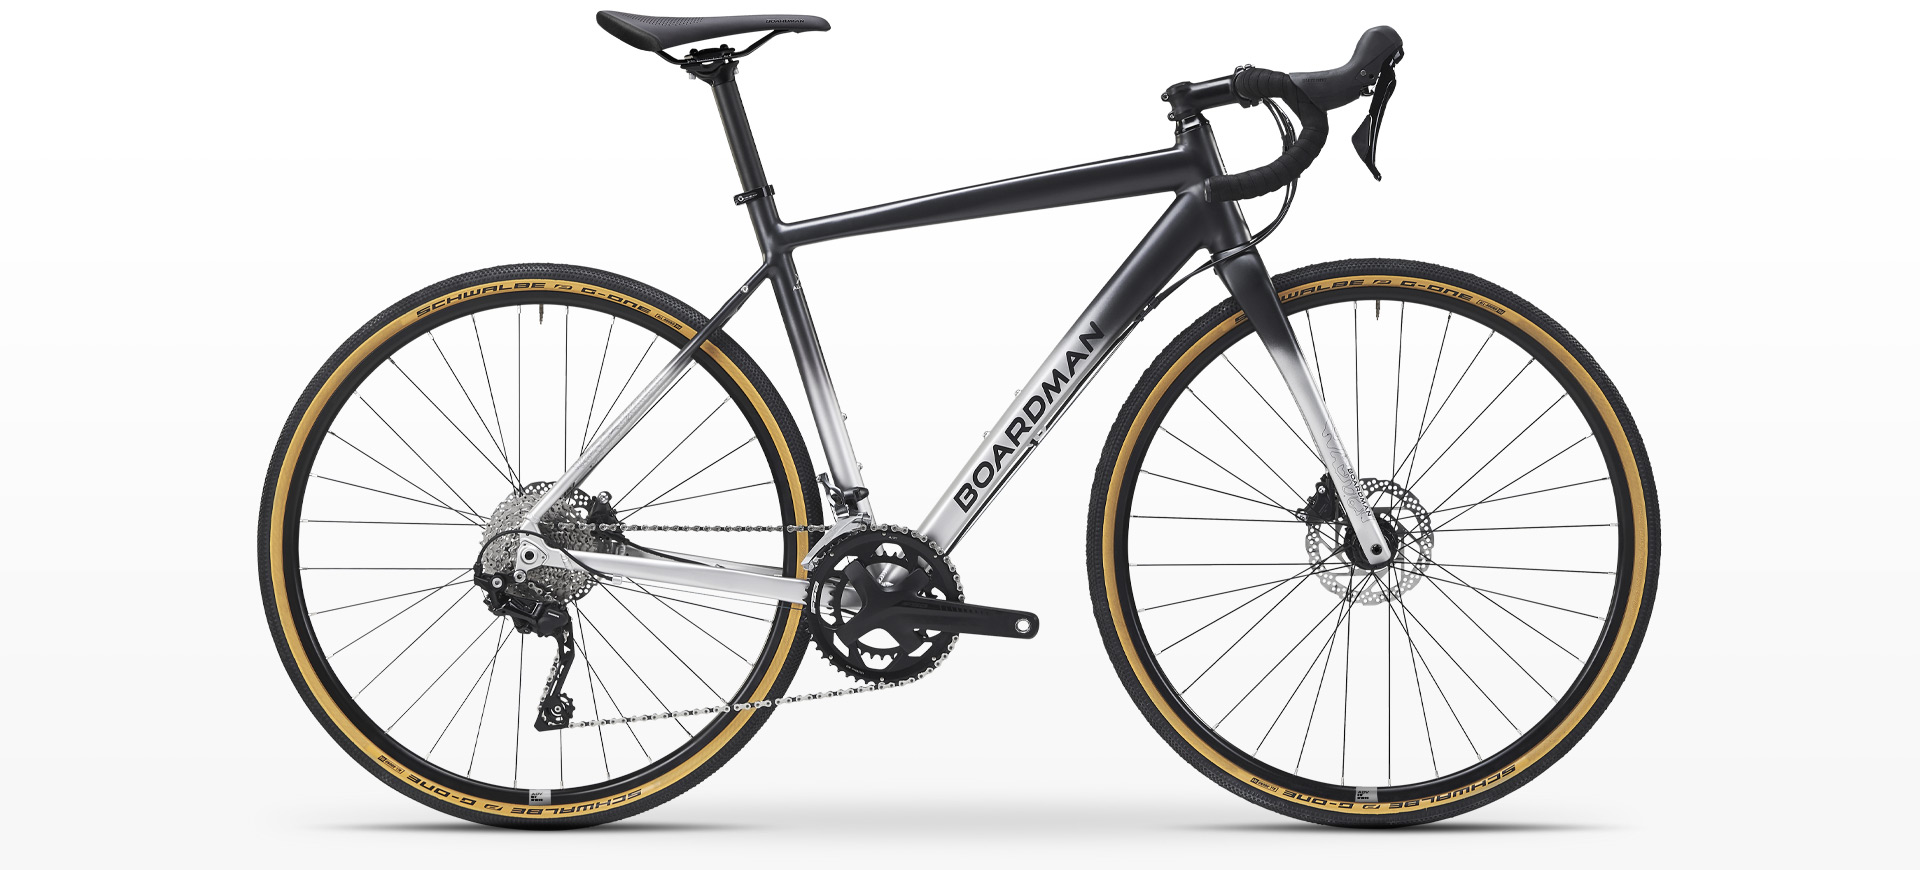 Boardman ADV 8.9 Adventure GRX Gravel Bike Image